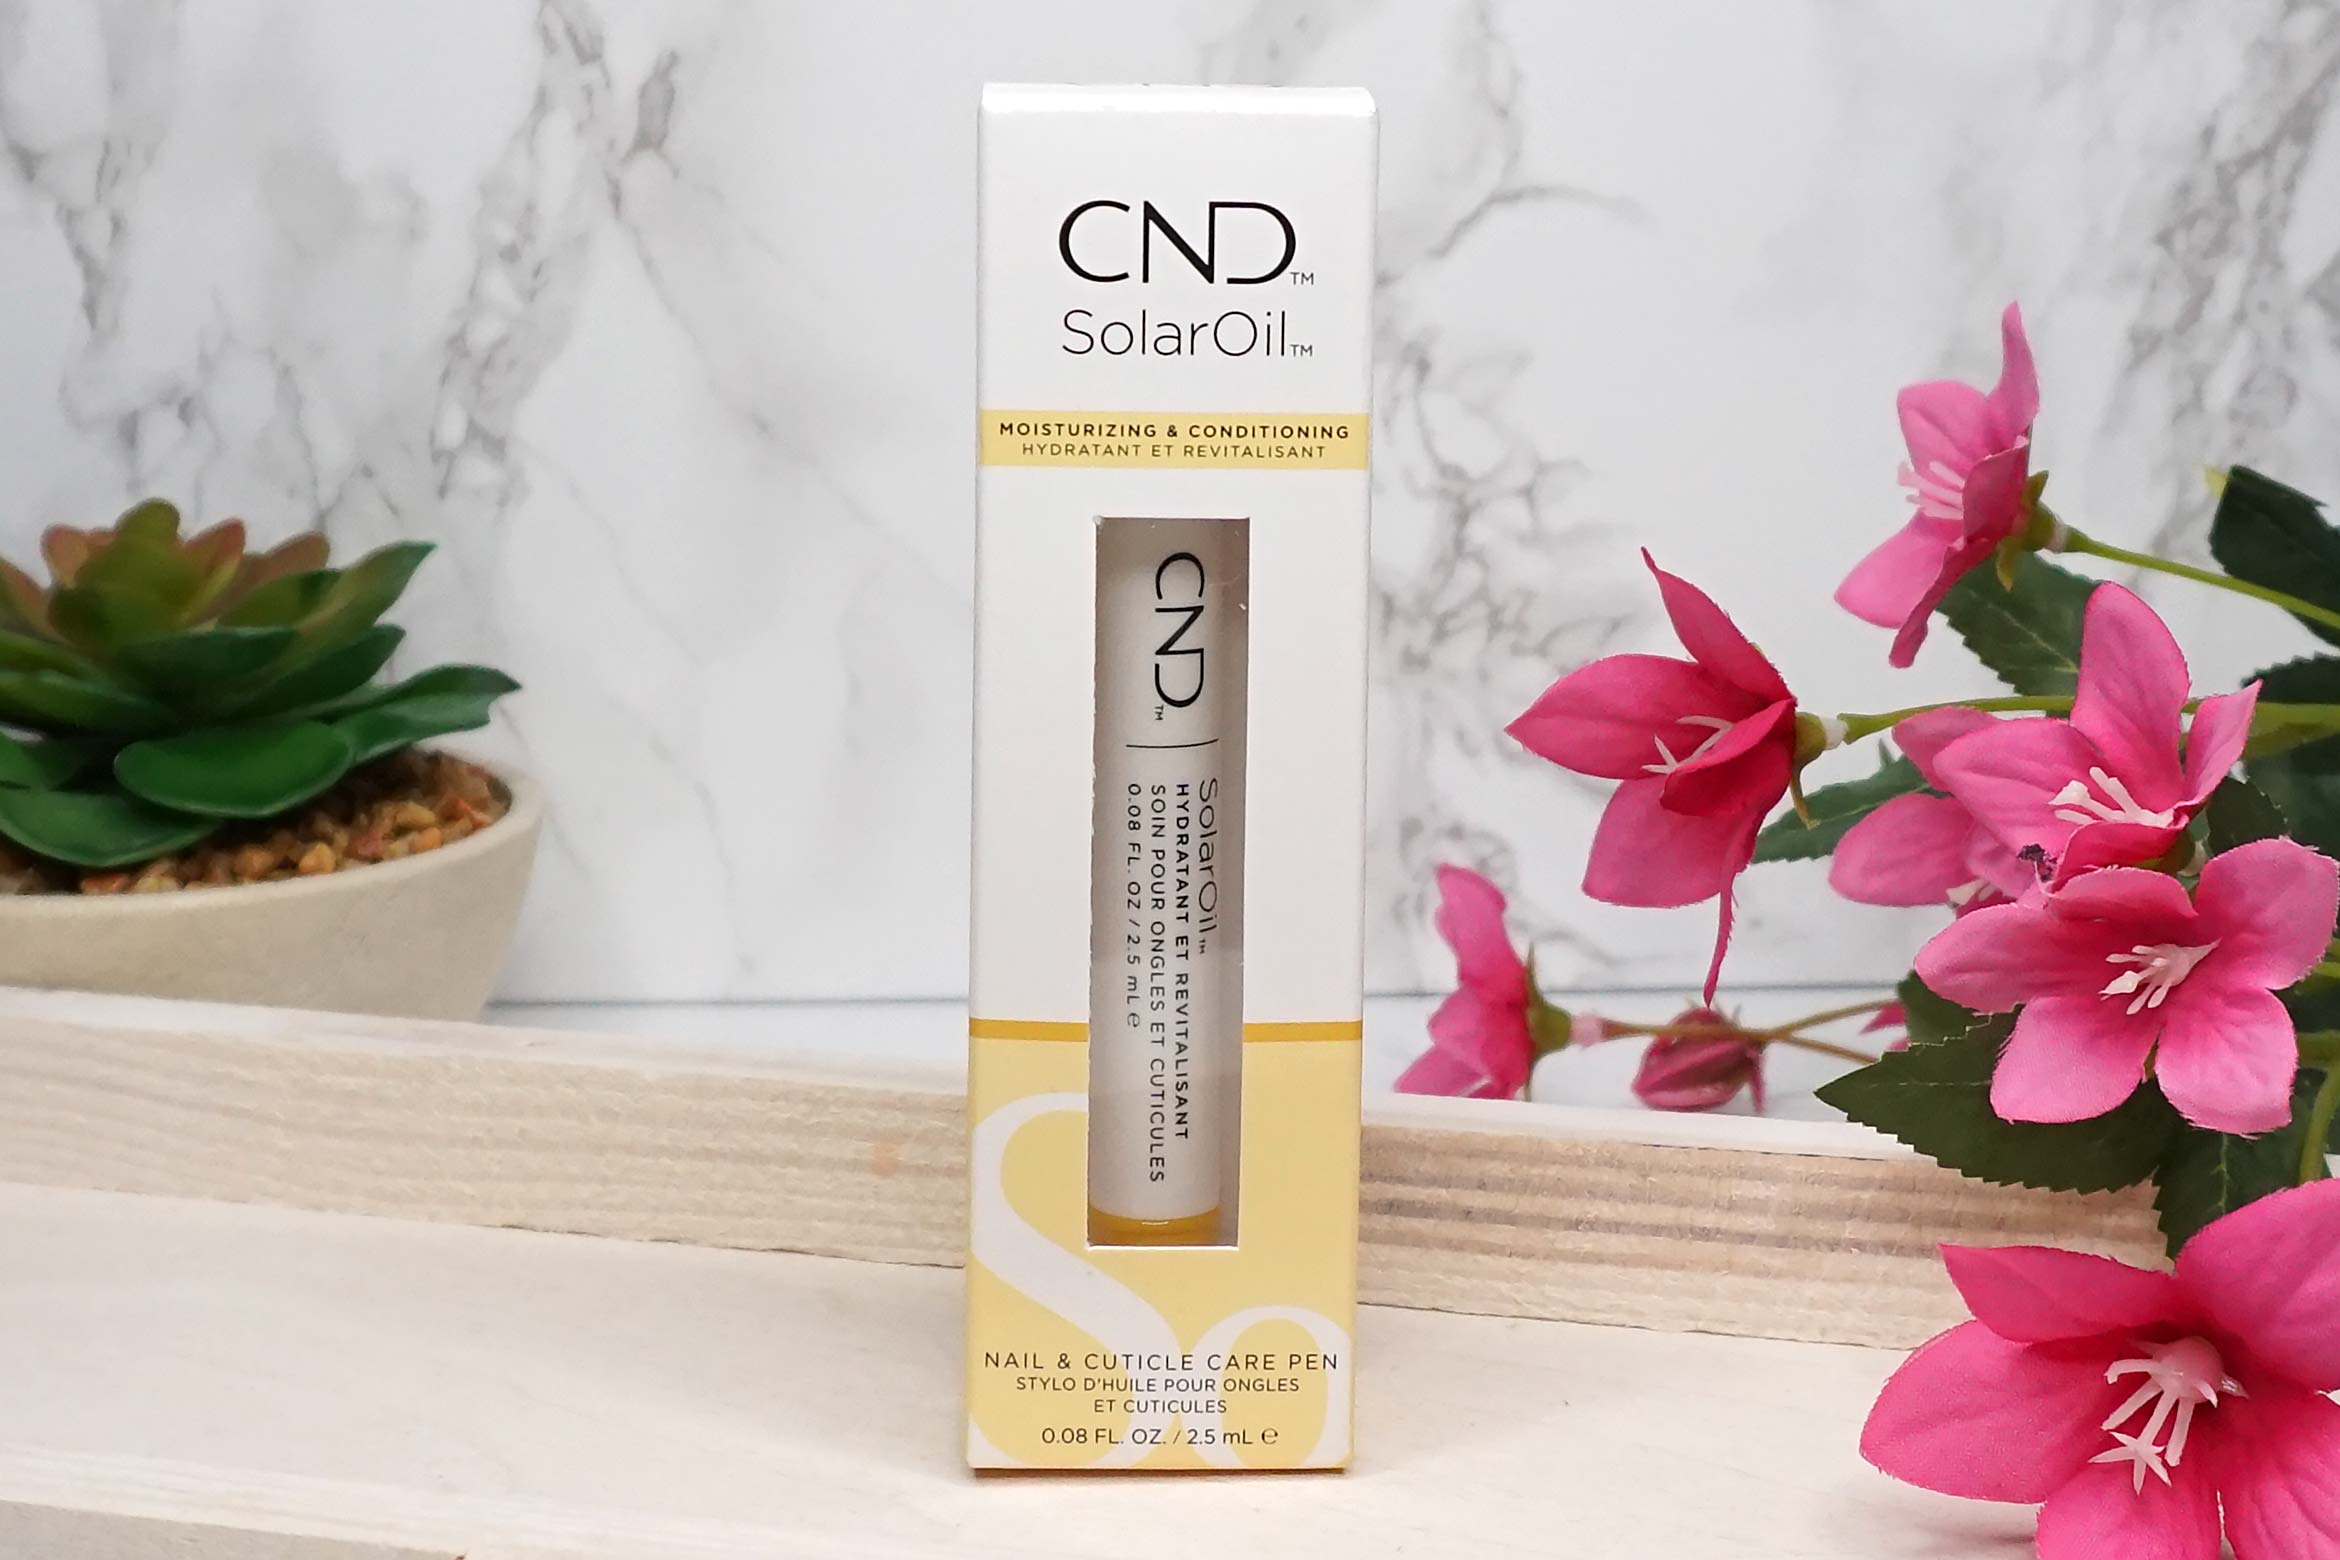 CND-solaroil-Nail-Cuticle-Care-Pen-review